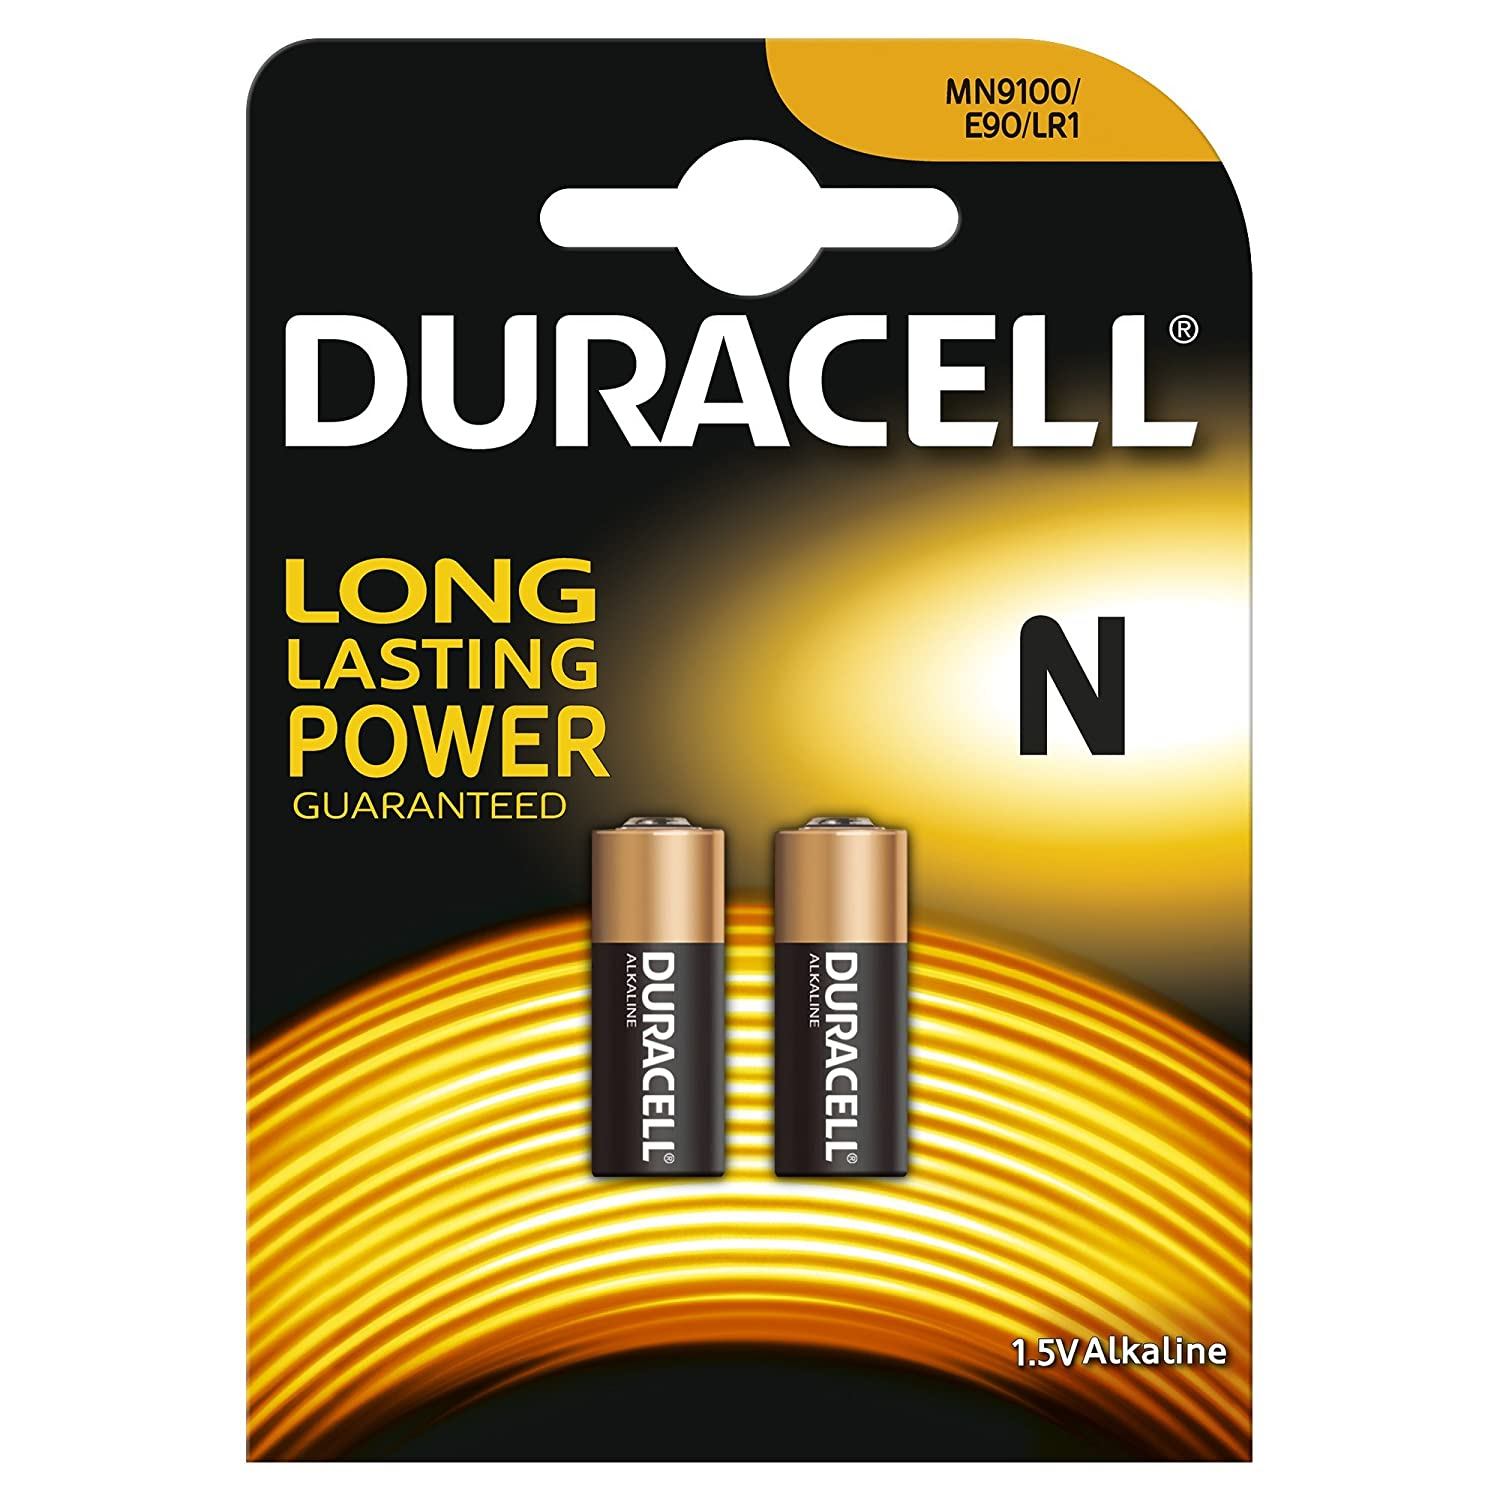 Pack of 2 Duracell MN9100 N 1.5V Alkaline Battery LR1 E90 KN